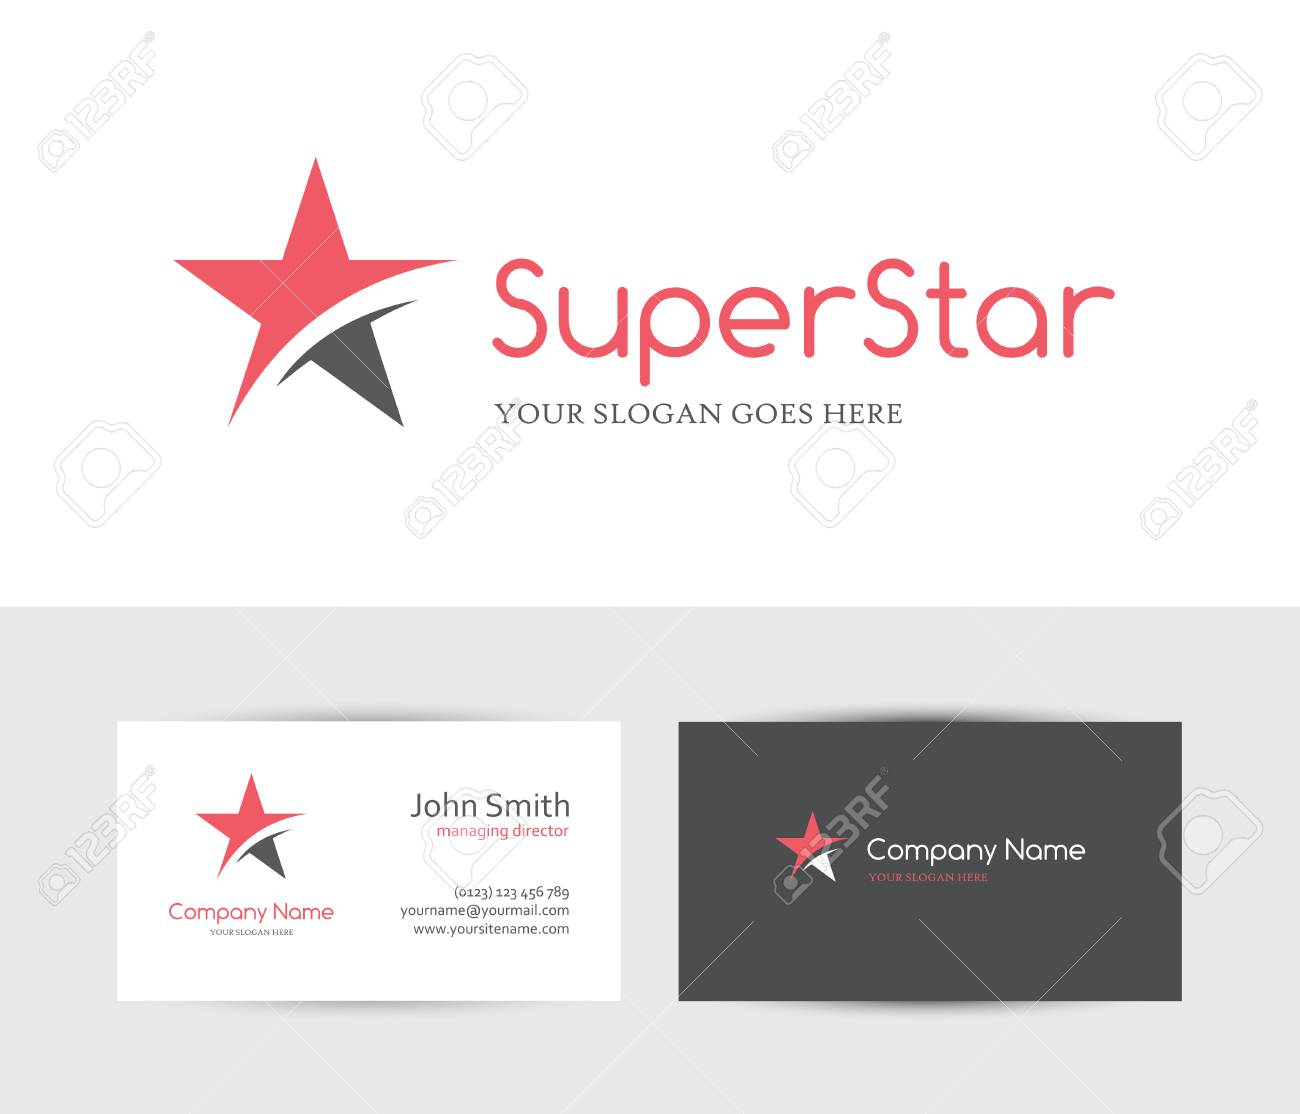 Red star and business card design template royalty free cliparts red star and business card design template stock vector 55492891 reheart Images